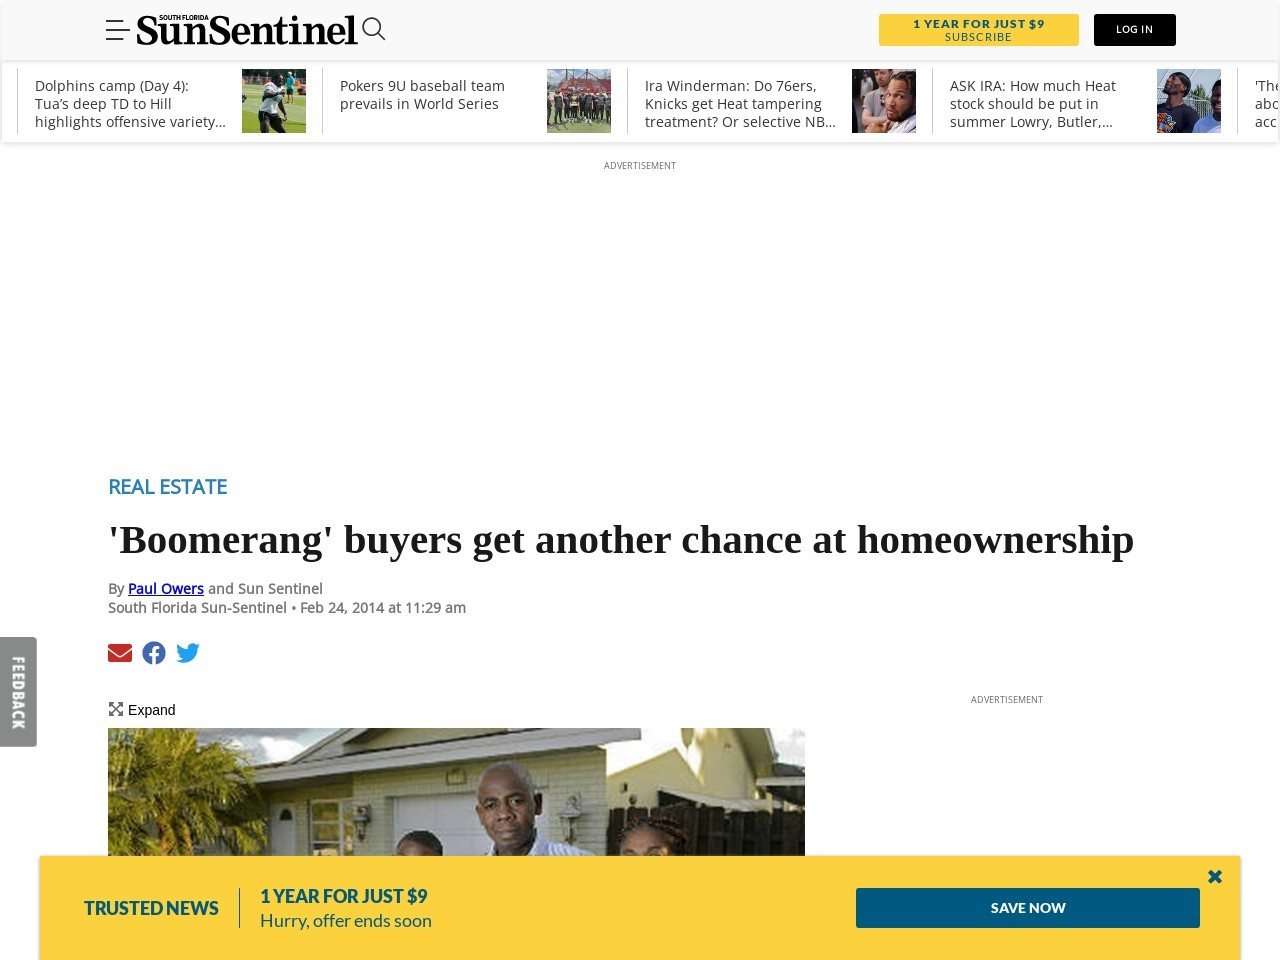 'Boomerang' buyers getting another chance at homeownership